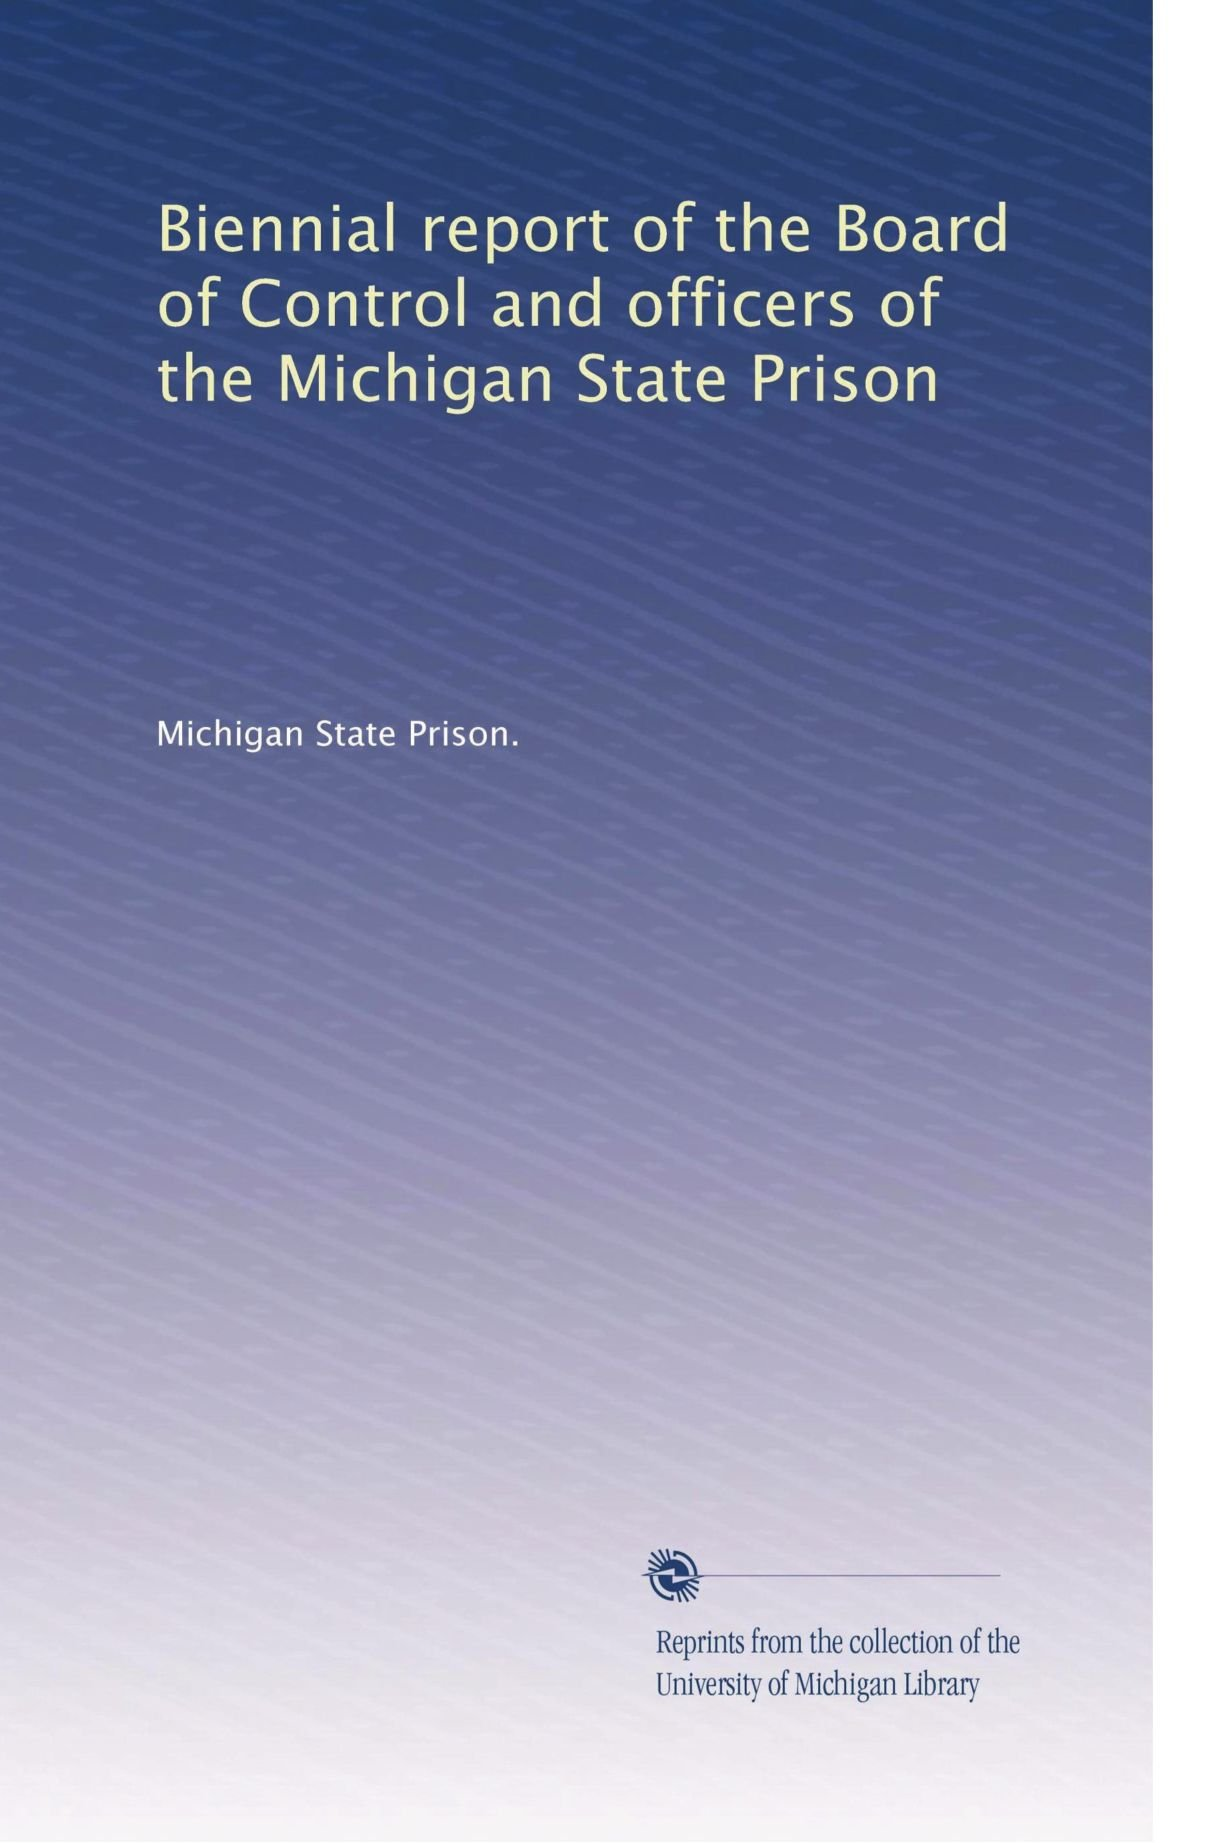 Biennial report of the Board of Control and officers of the Michigan State Prison PDF